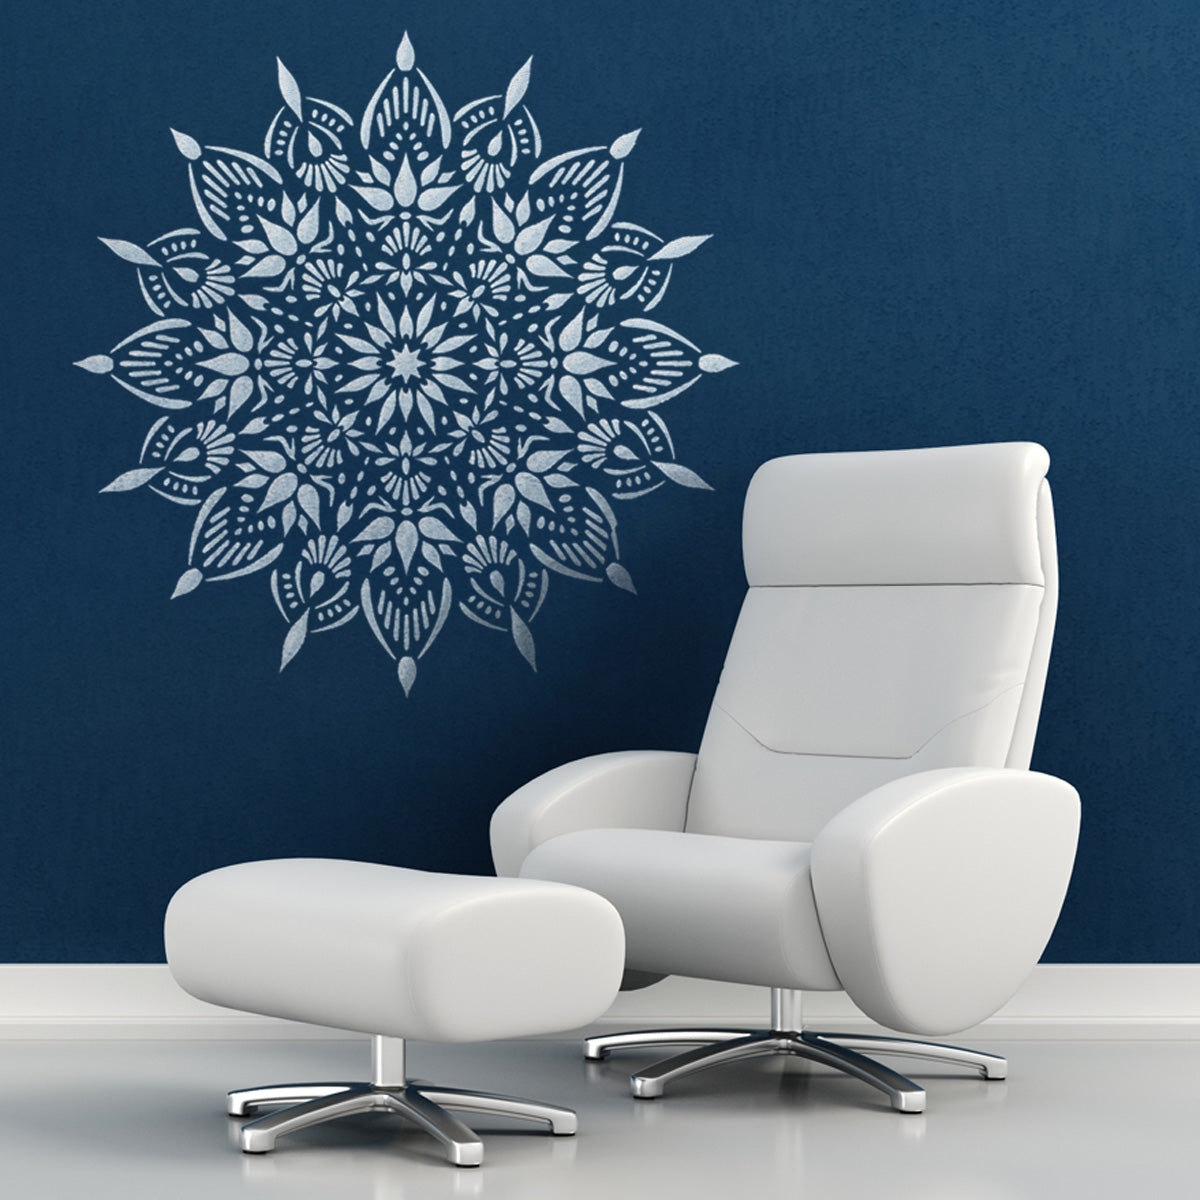 CraftStar Indu Mandala Stencil on Wall